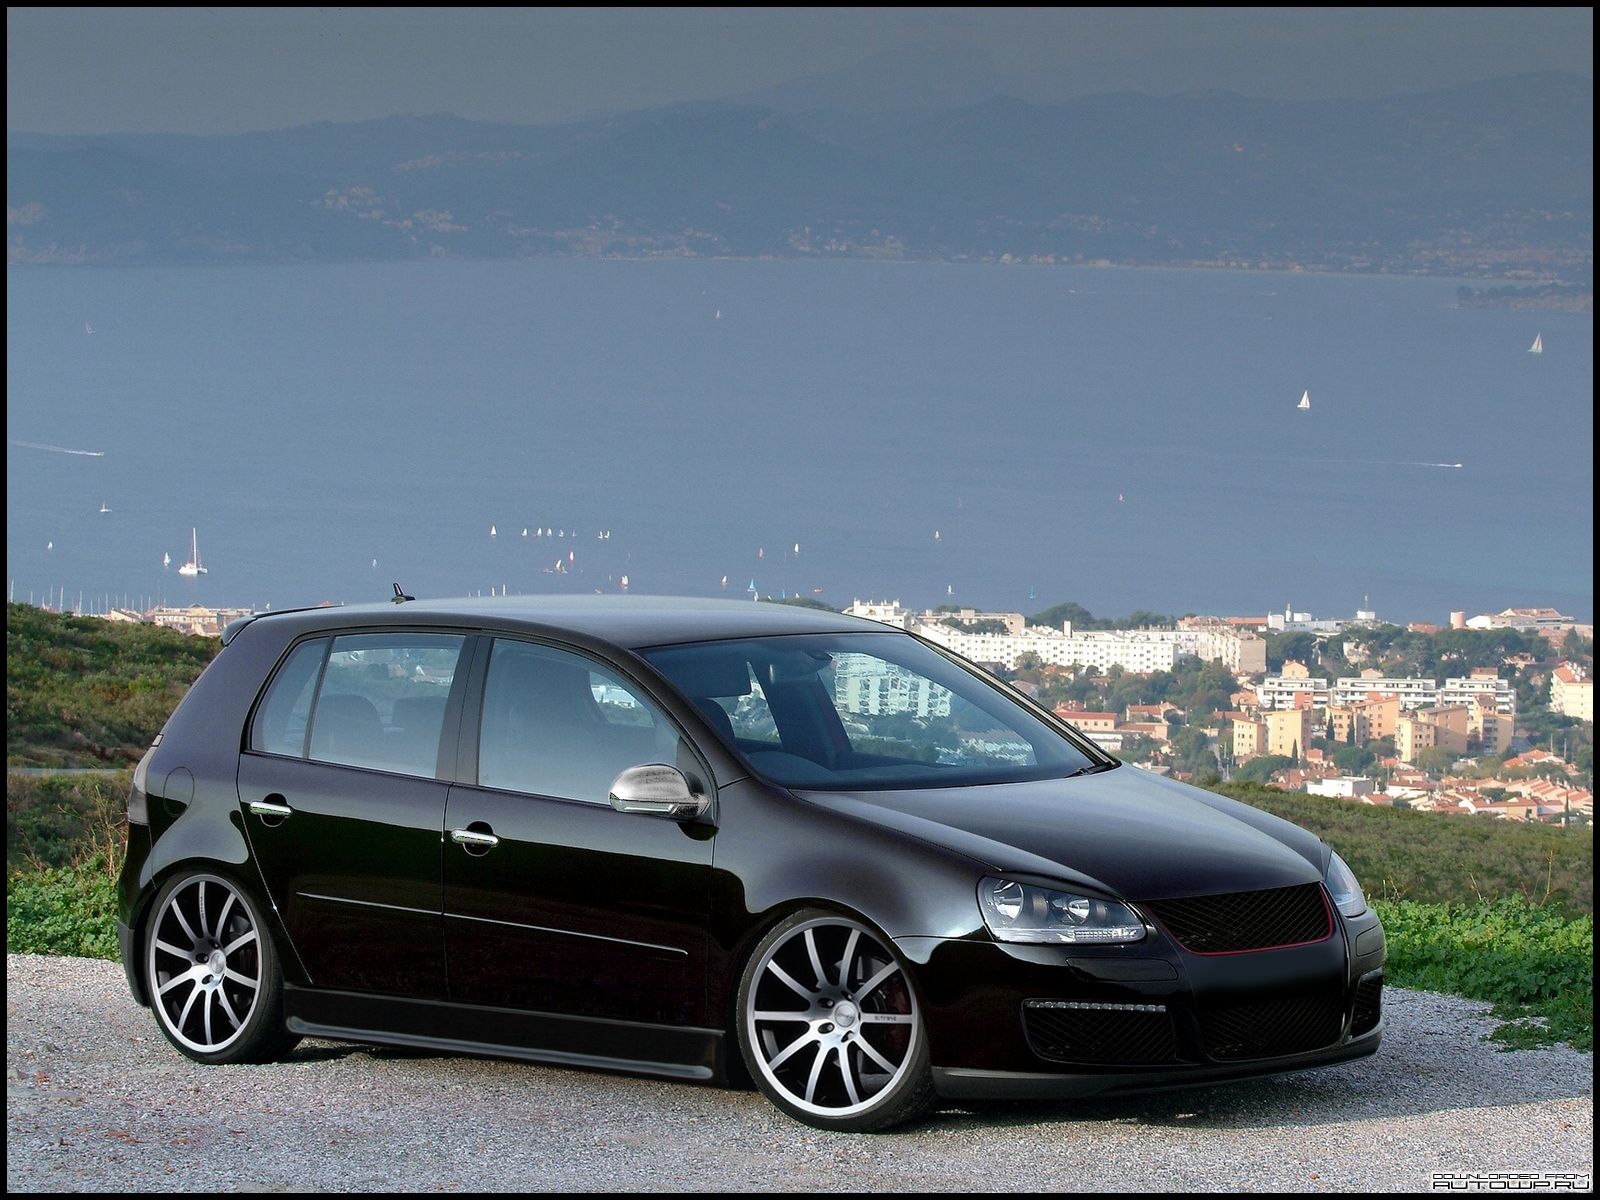 kommentare zu eibach legt den neuen golf gti tiefer. Black Bedroom Furniture Sets. Home Design Ideas